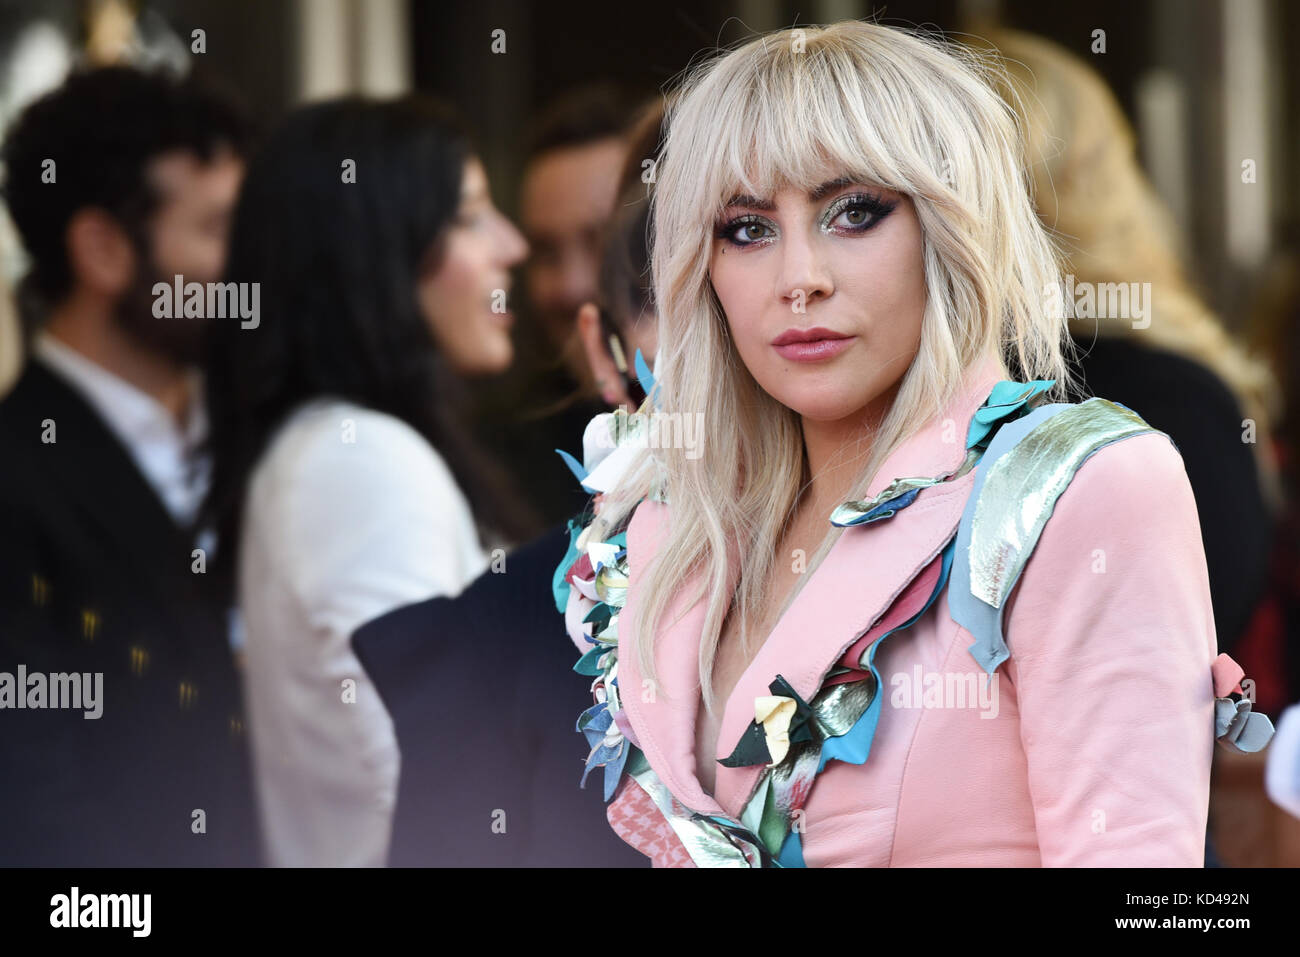 42nd Toronto International Film Festival - Lady Gaga Photocall  Featuring: Lady Gaga Where: Toronto, Canada When: - Stock Image